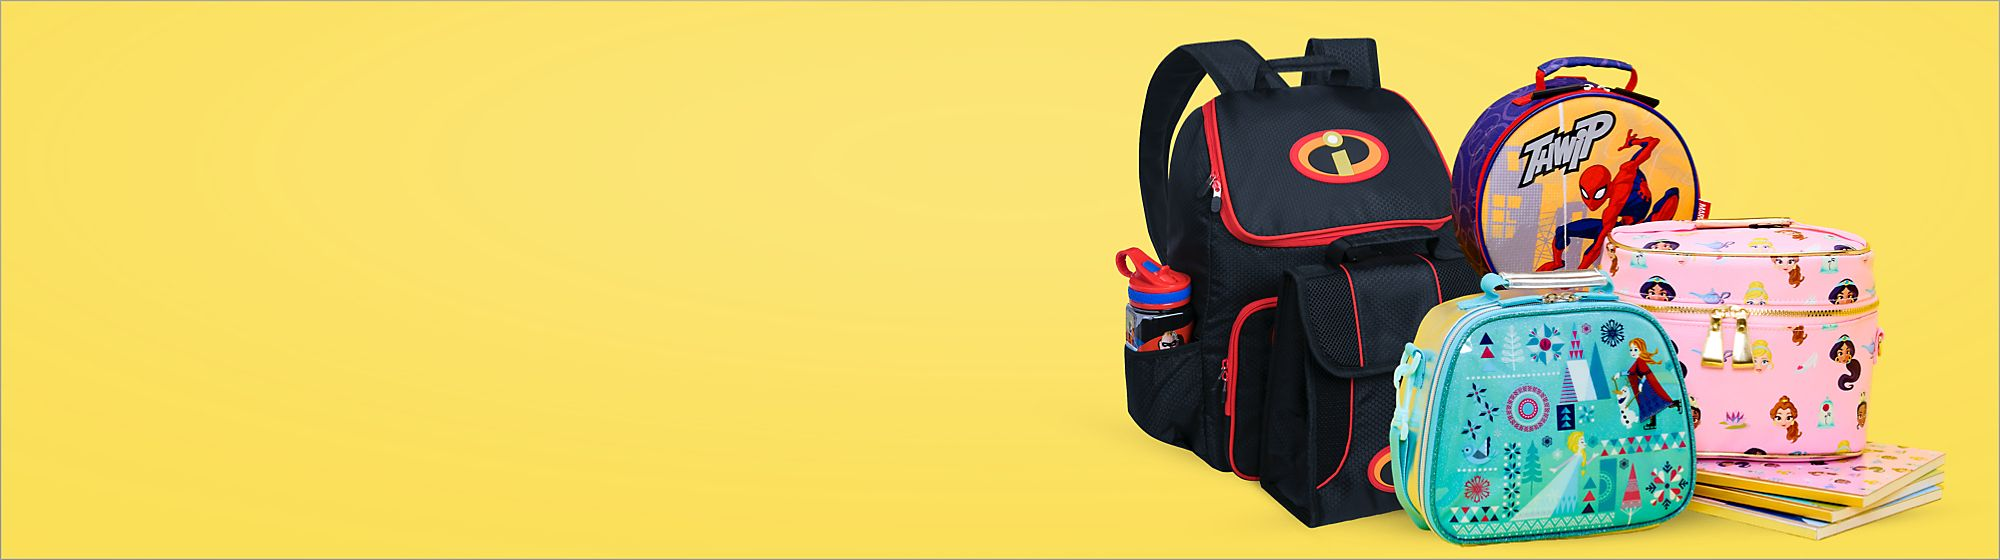 Kids' Bags and Accessories Take the fun with you with our range of Disney, Star Wars and Marvel kids' bags and accessories SHOP NOW